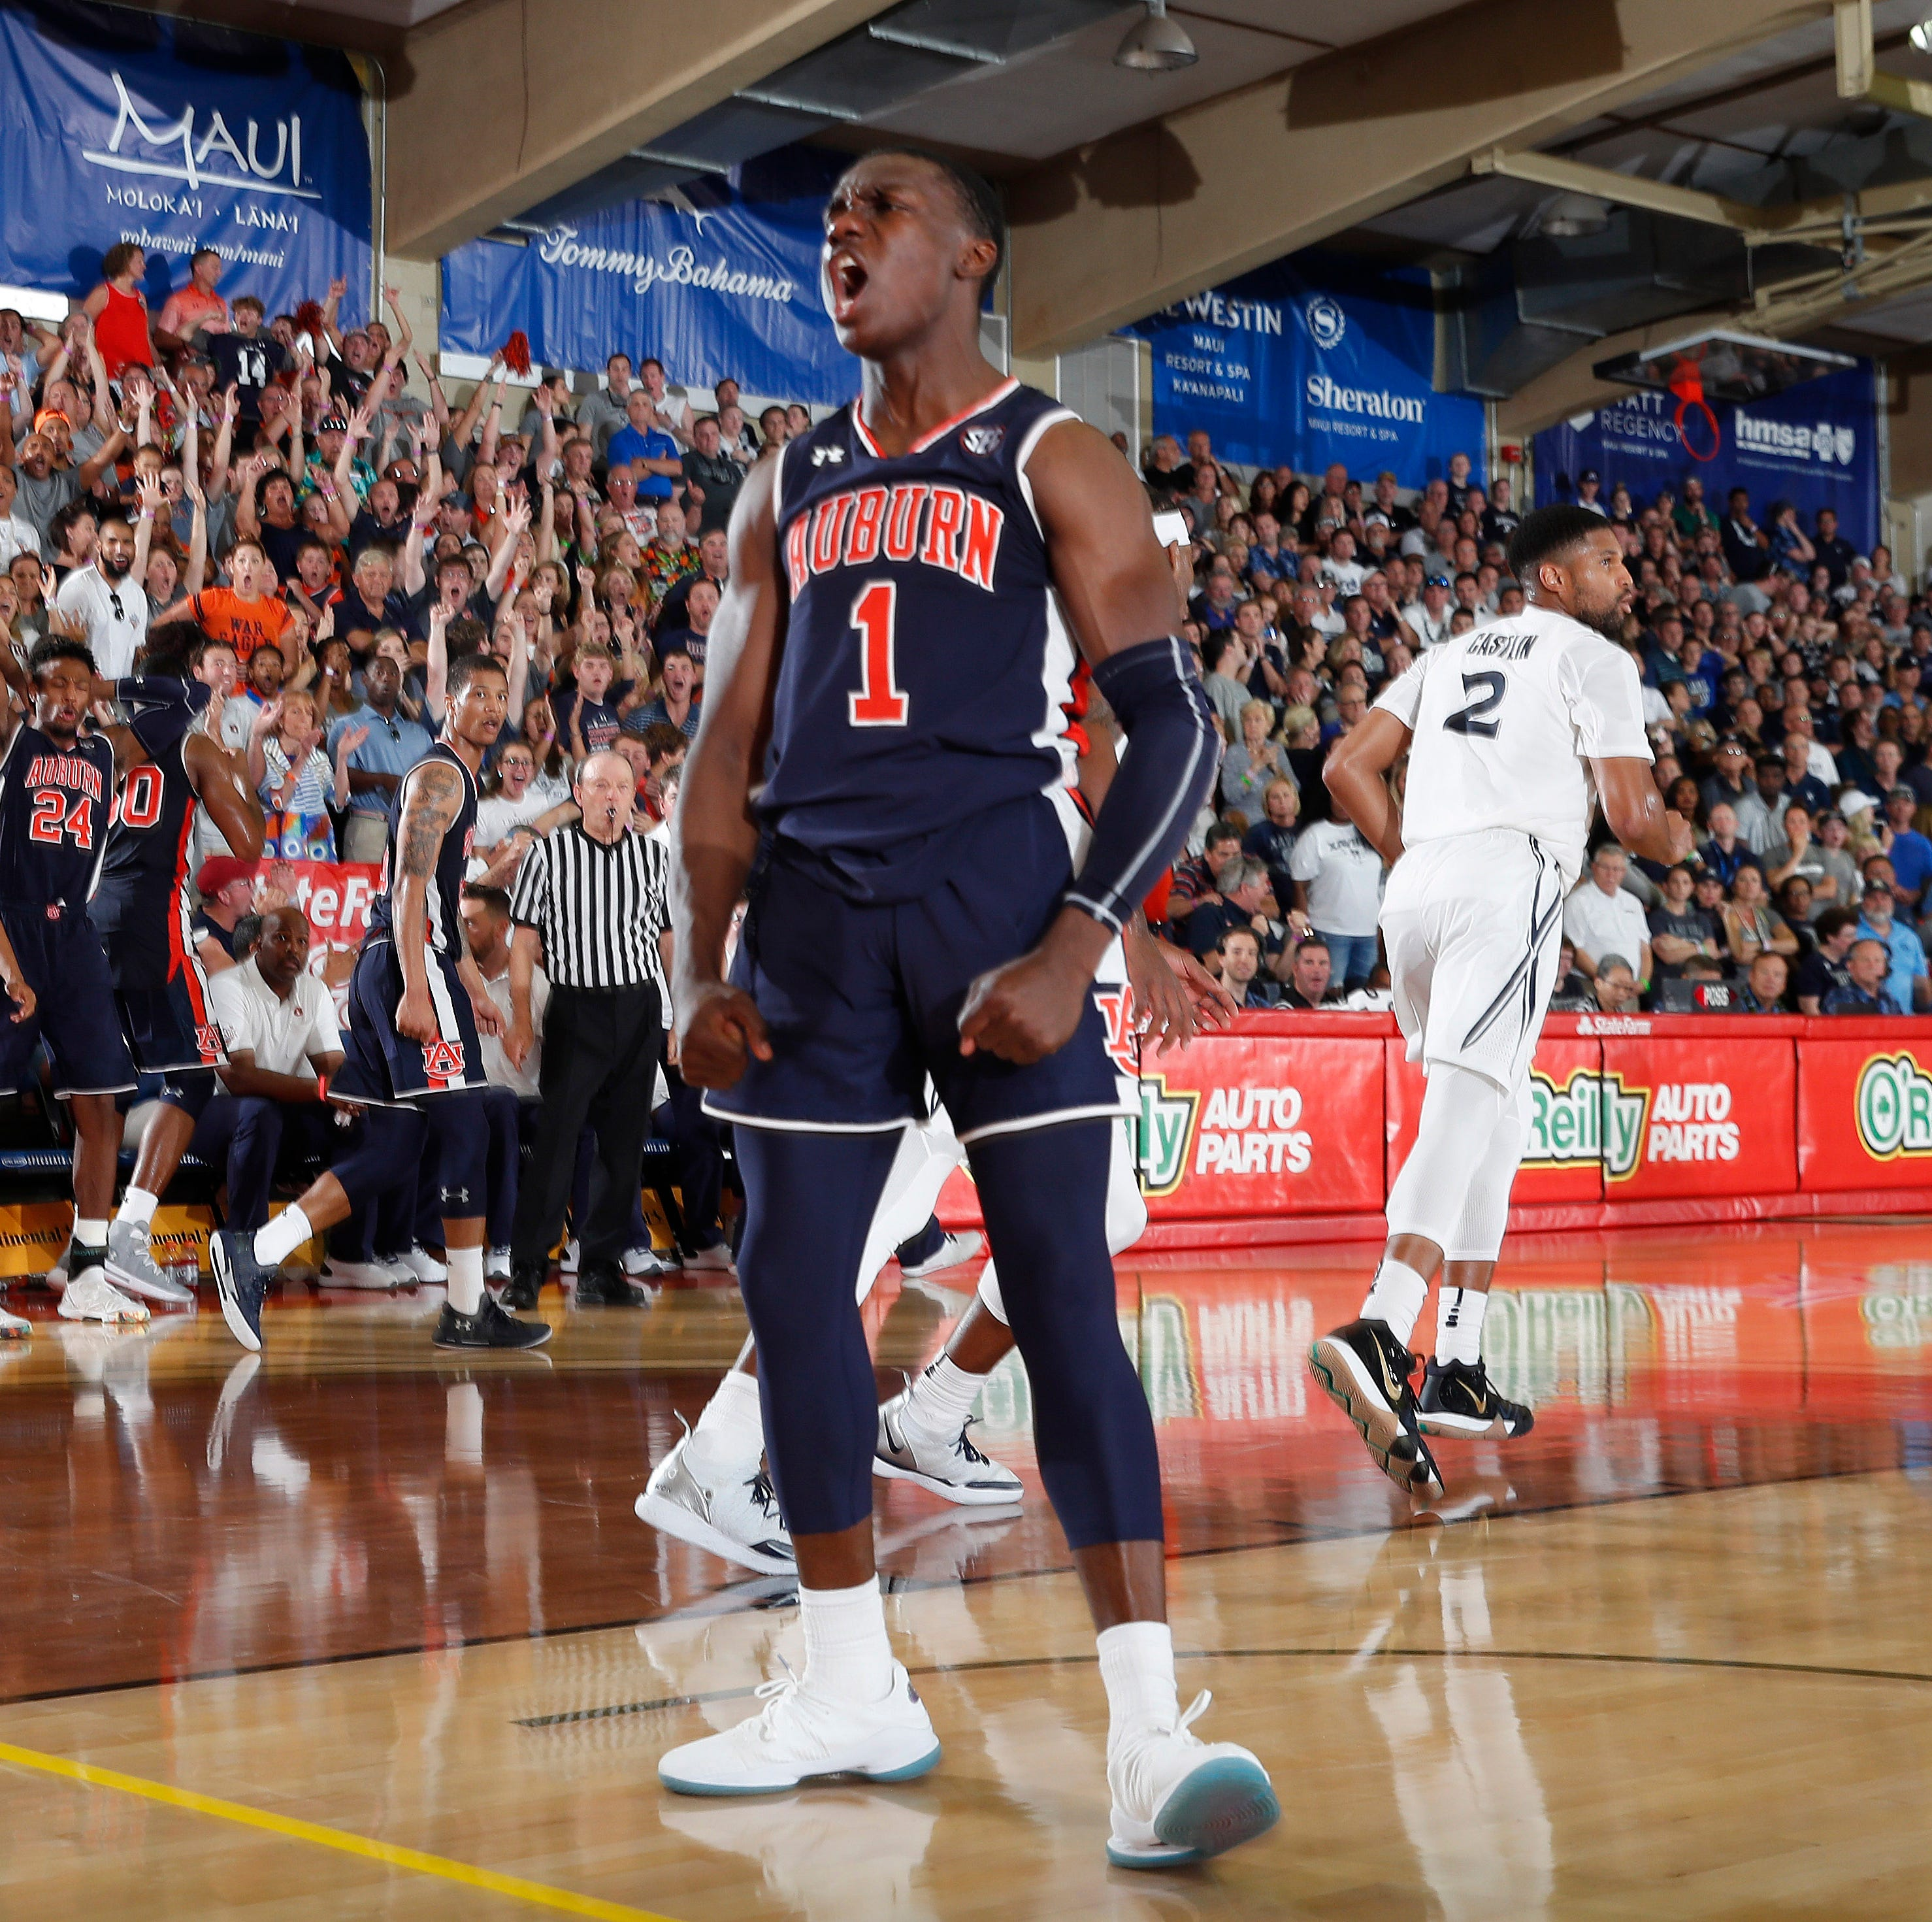 See Auburn's Jared Harper dunk over 3 guys at the Maui Invitational